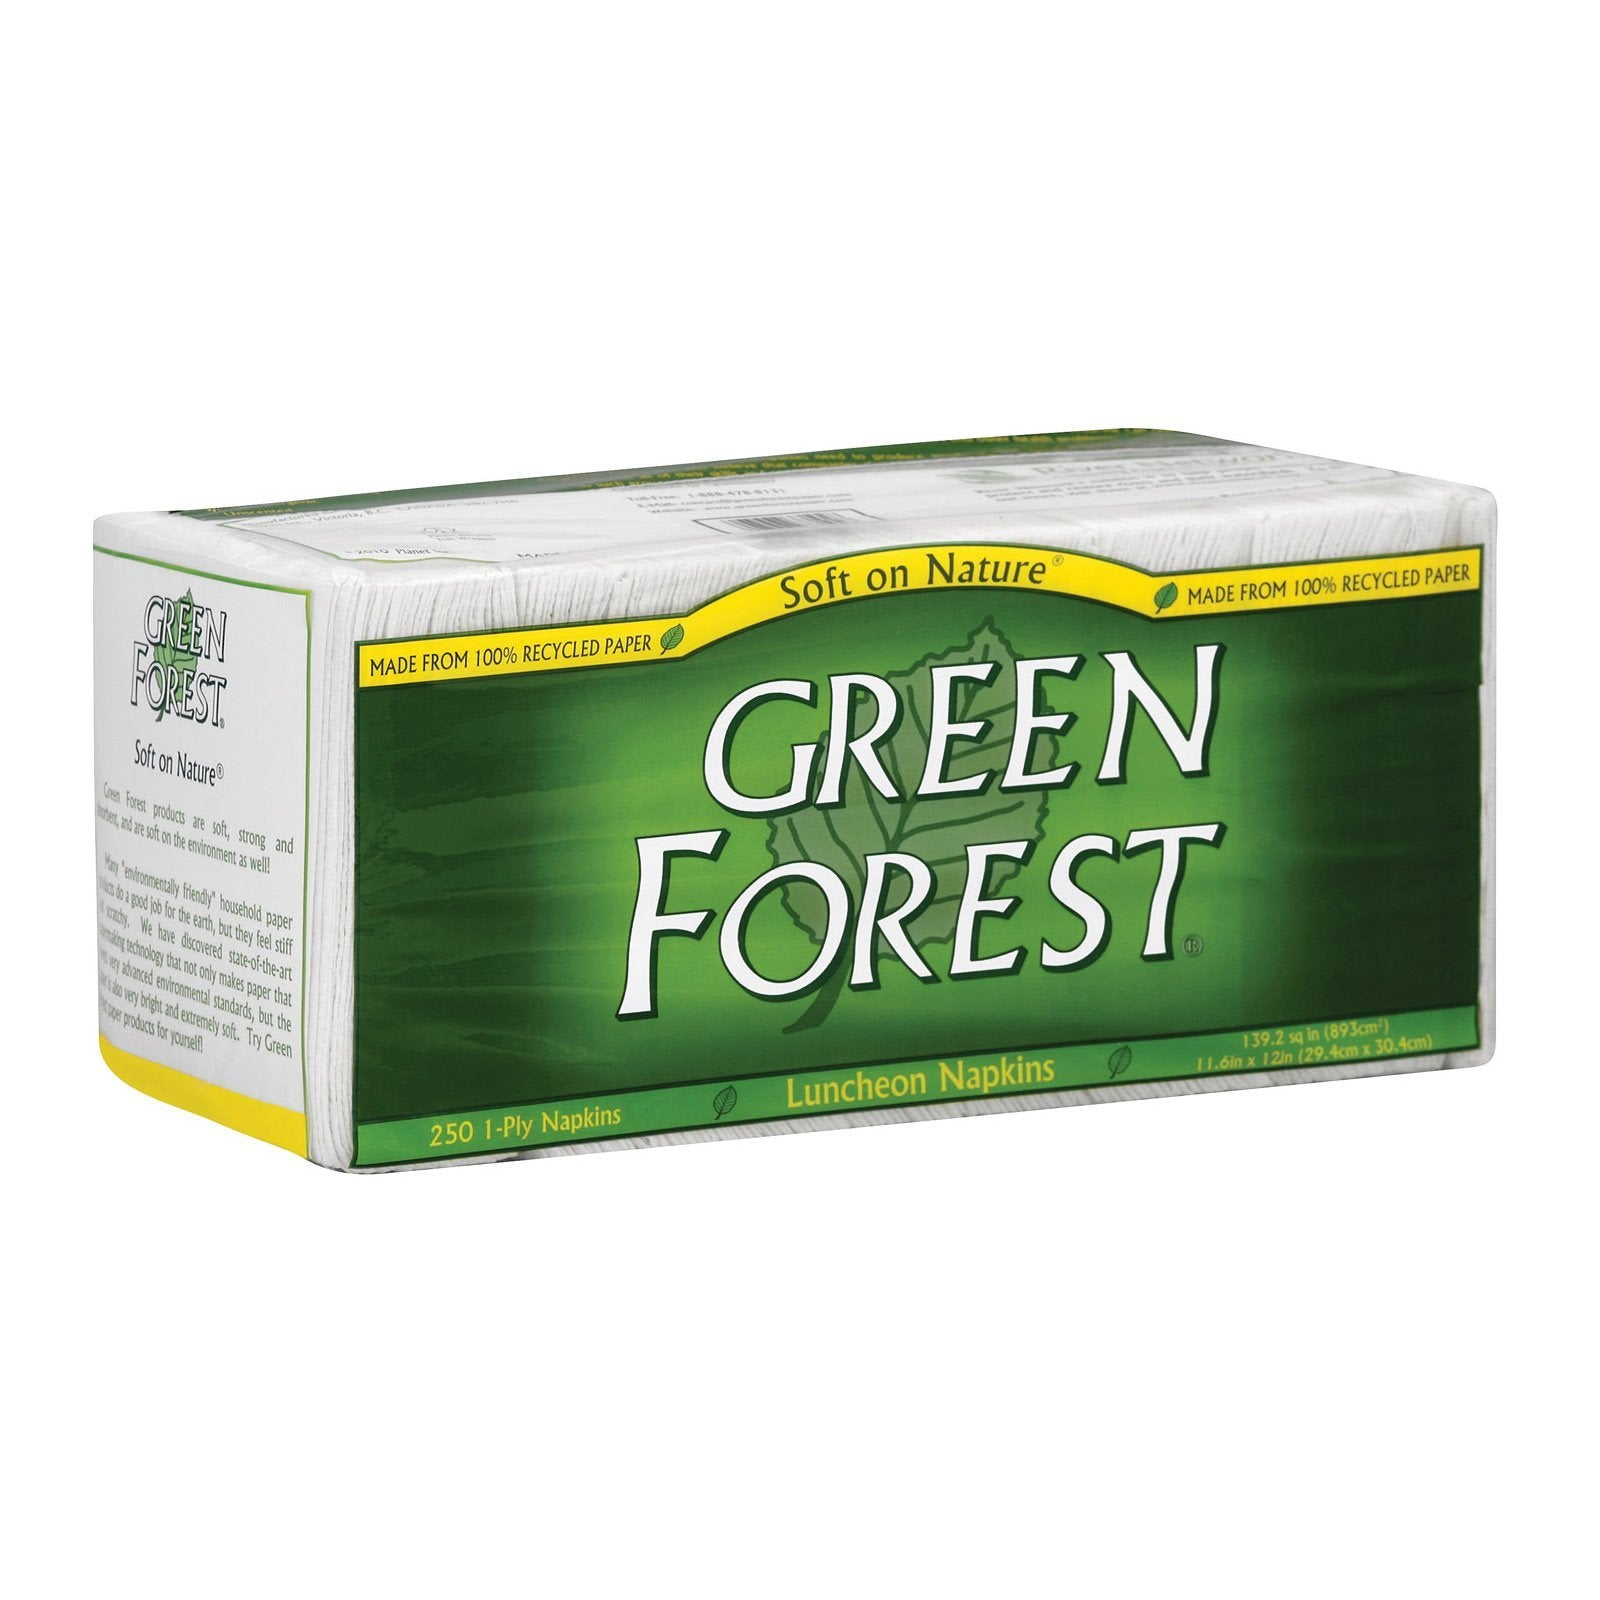 Green Forest Luncheon Napkins - White - Case Of 12 - 250 Count - BeeGreen